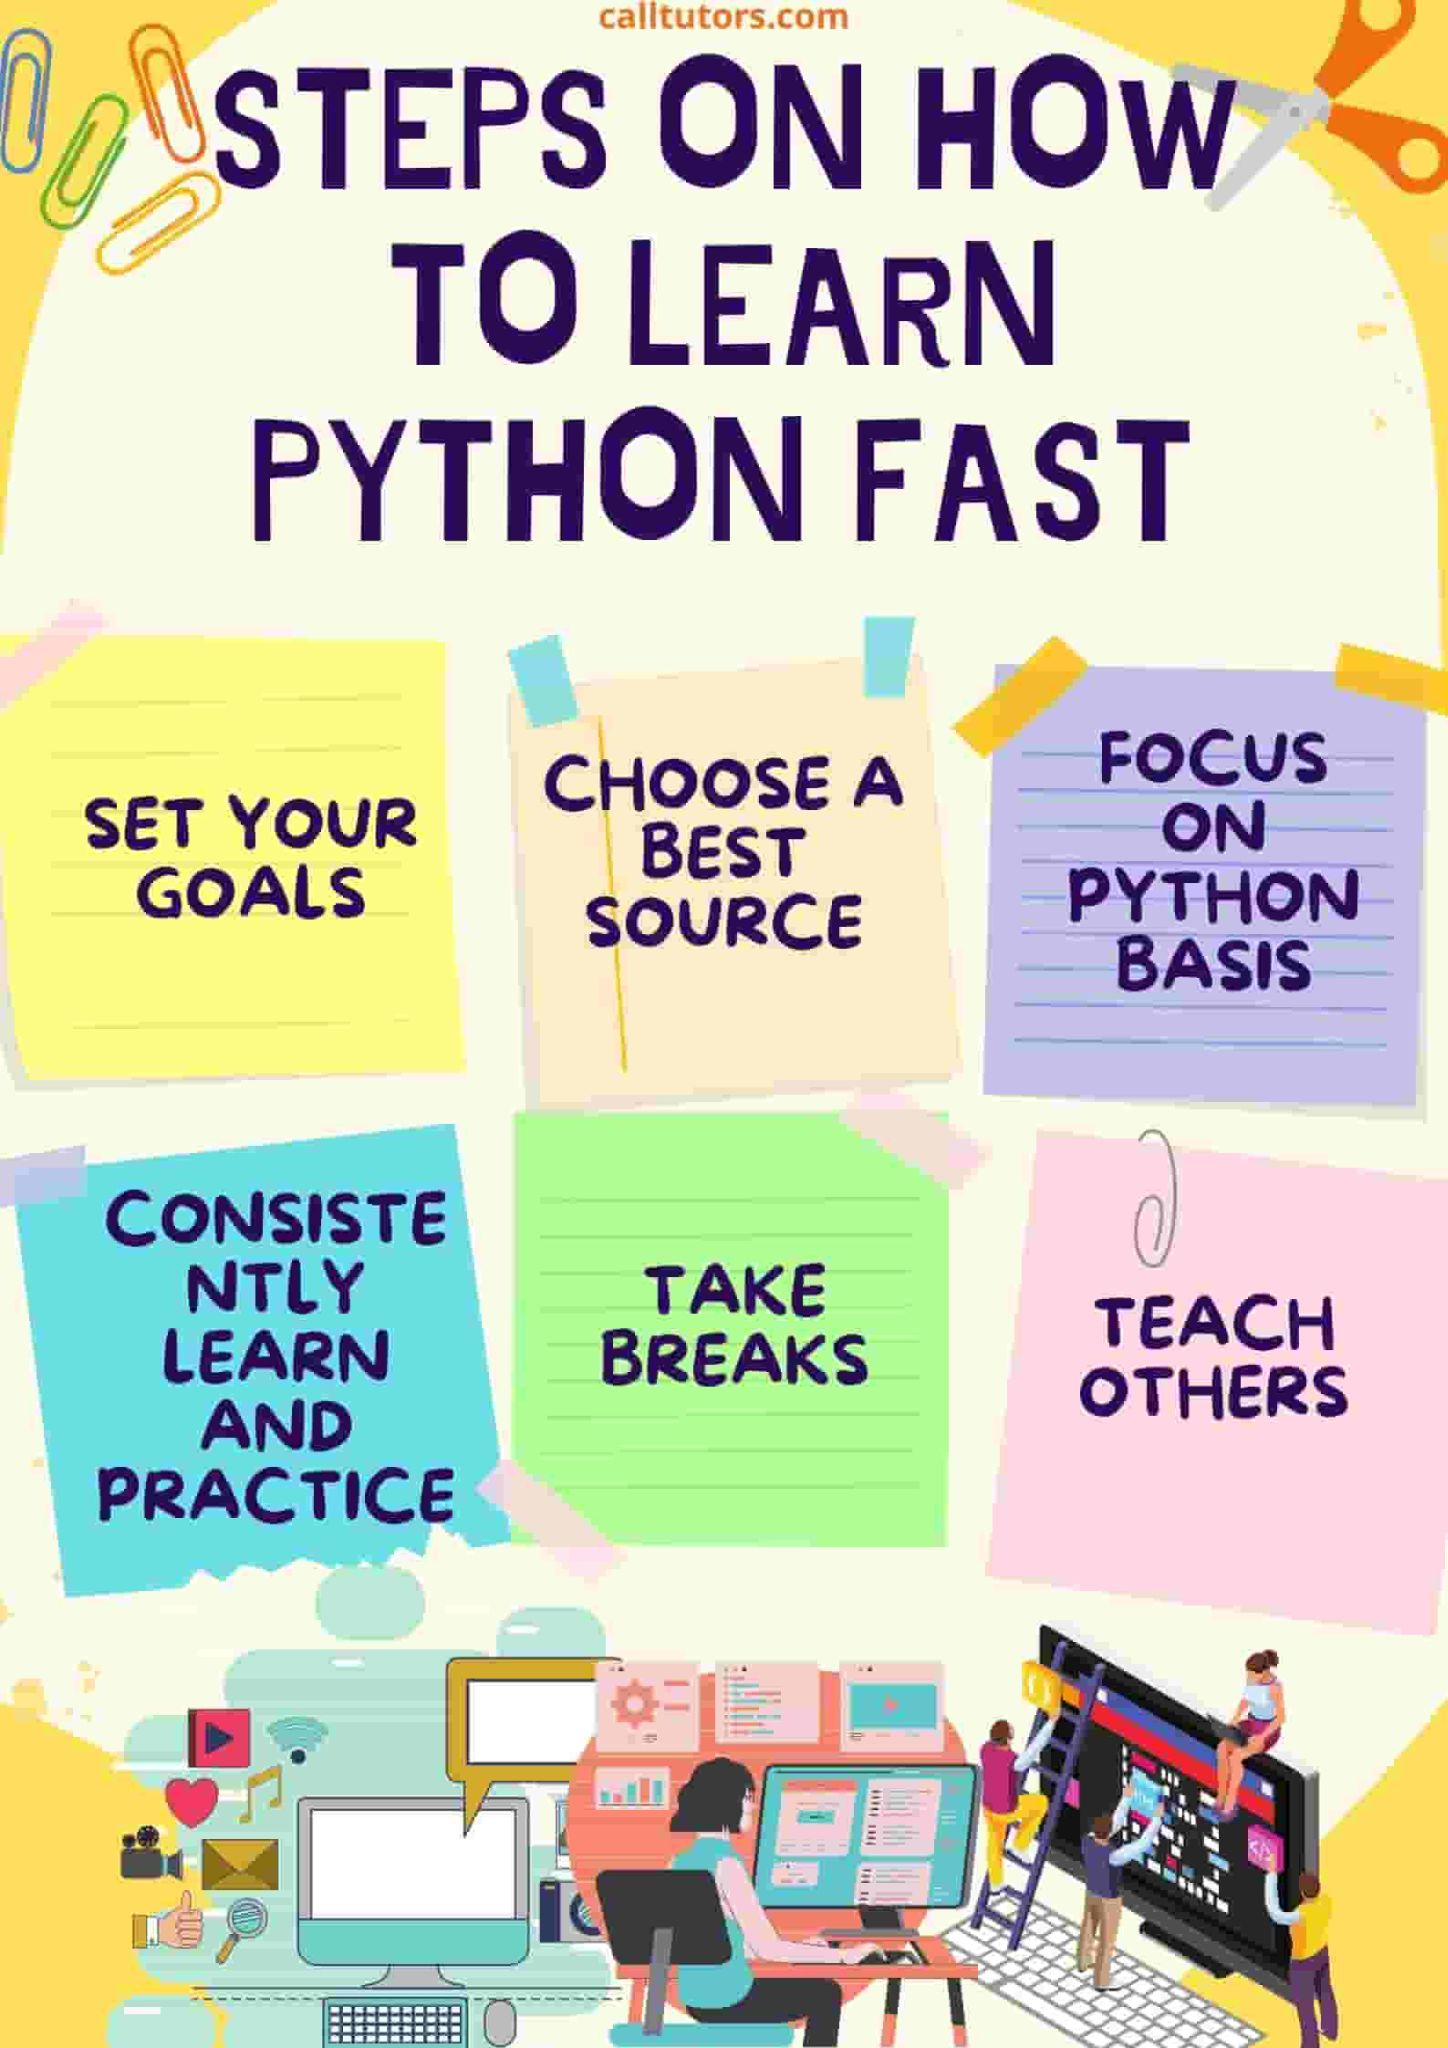 Steps on how to learn python fast